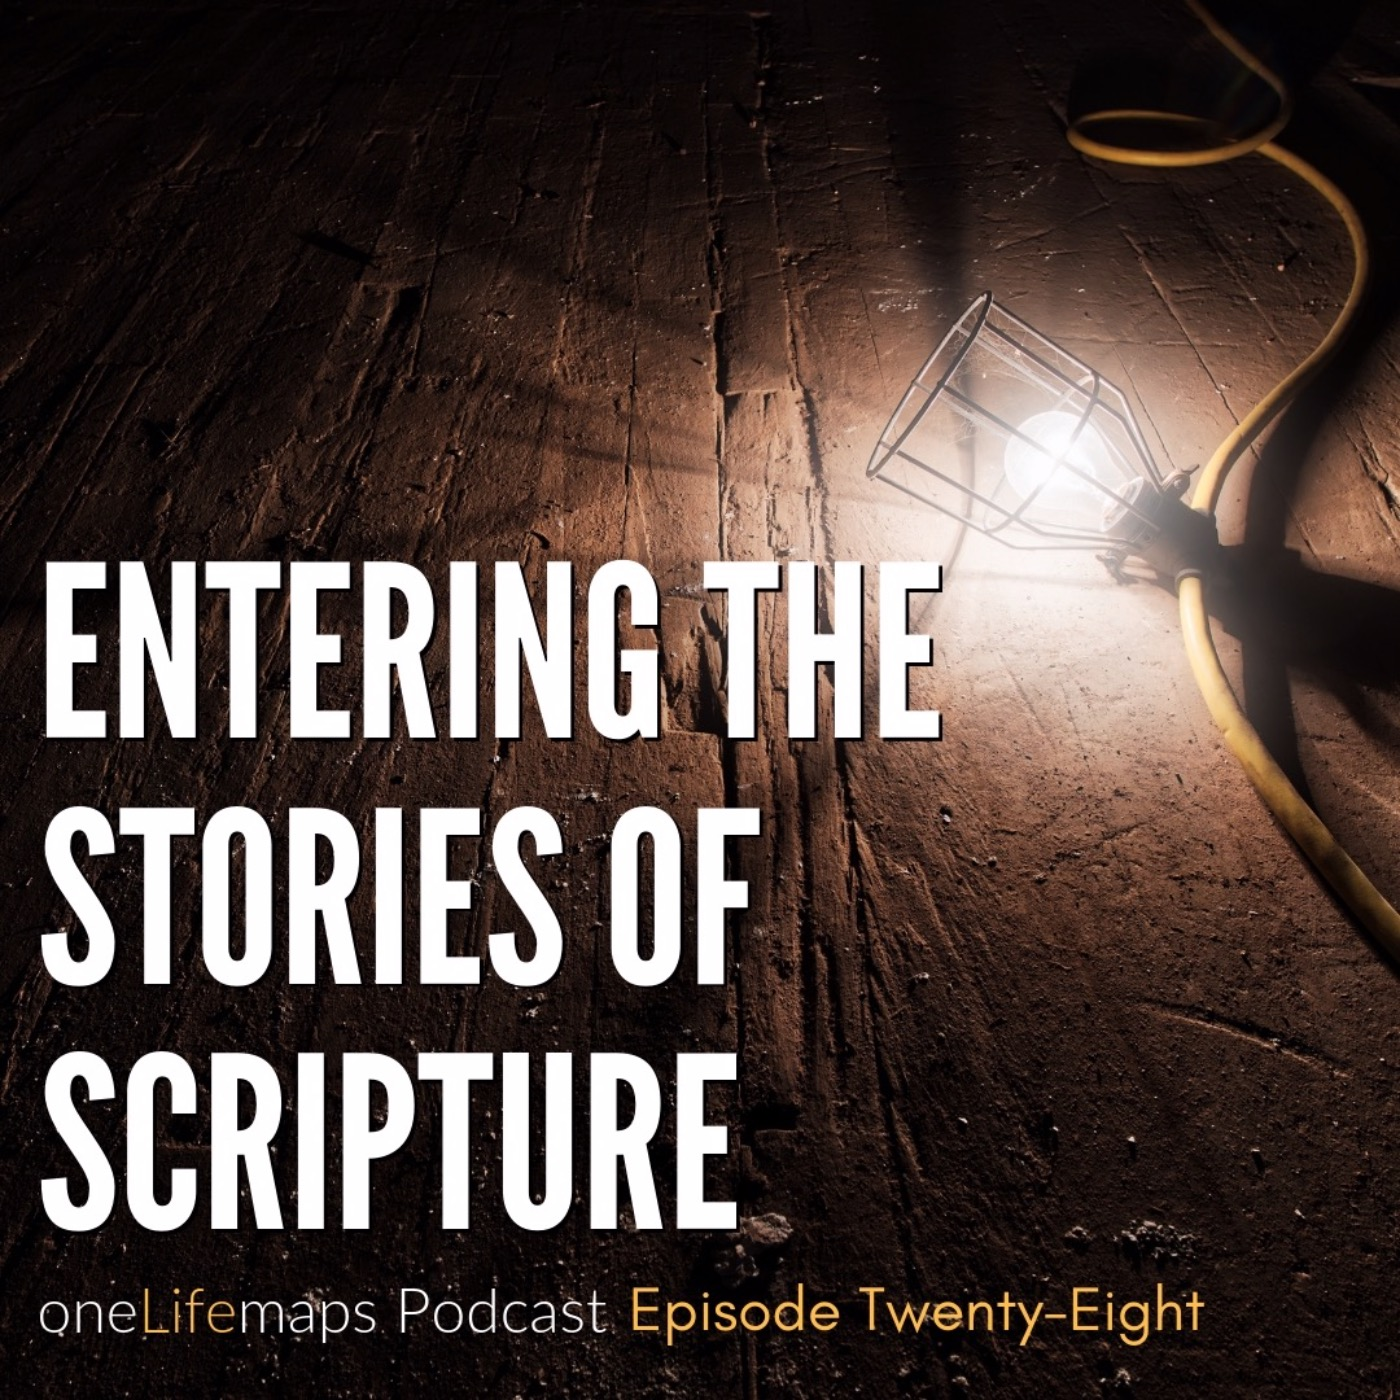 Entering the Stories of Scripture